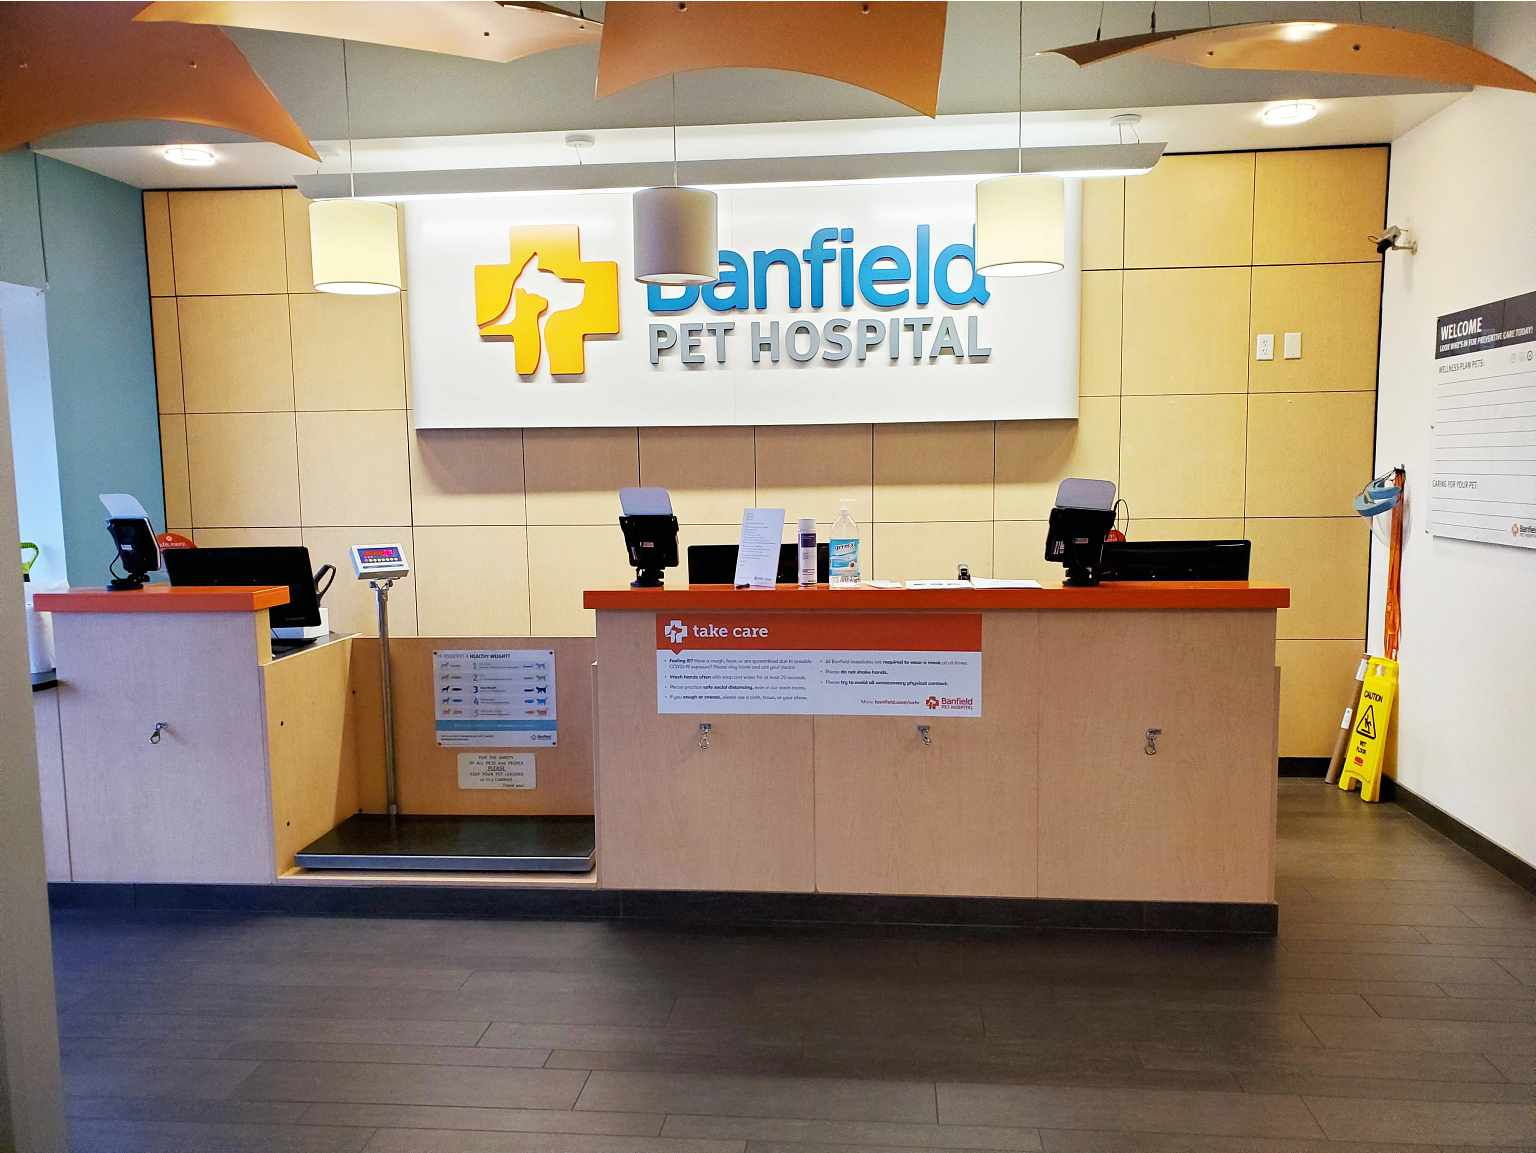 The front desk of the Banfield Pet Hospital